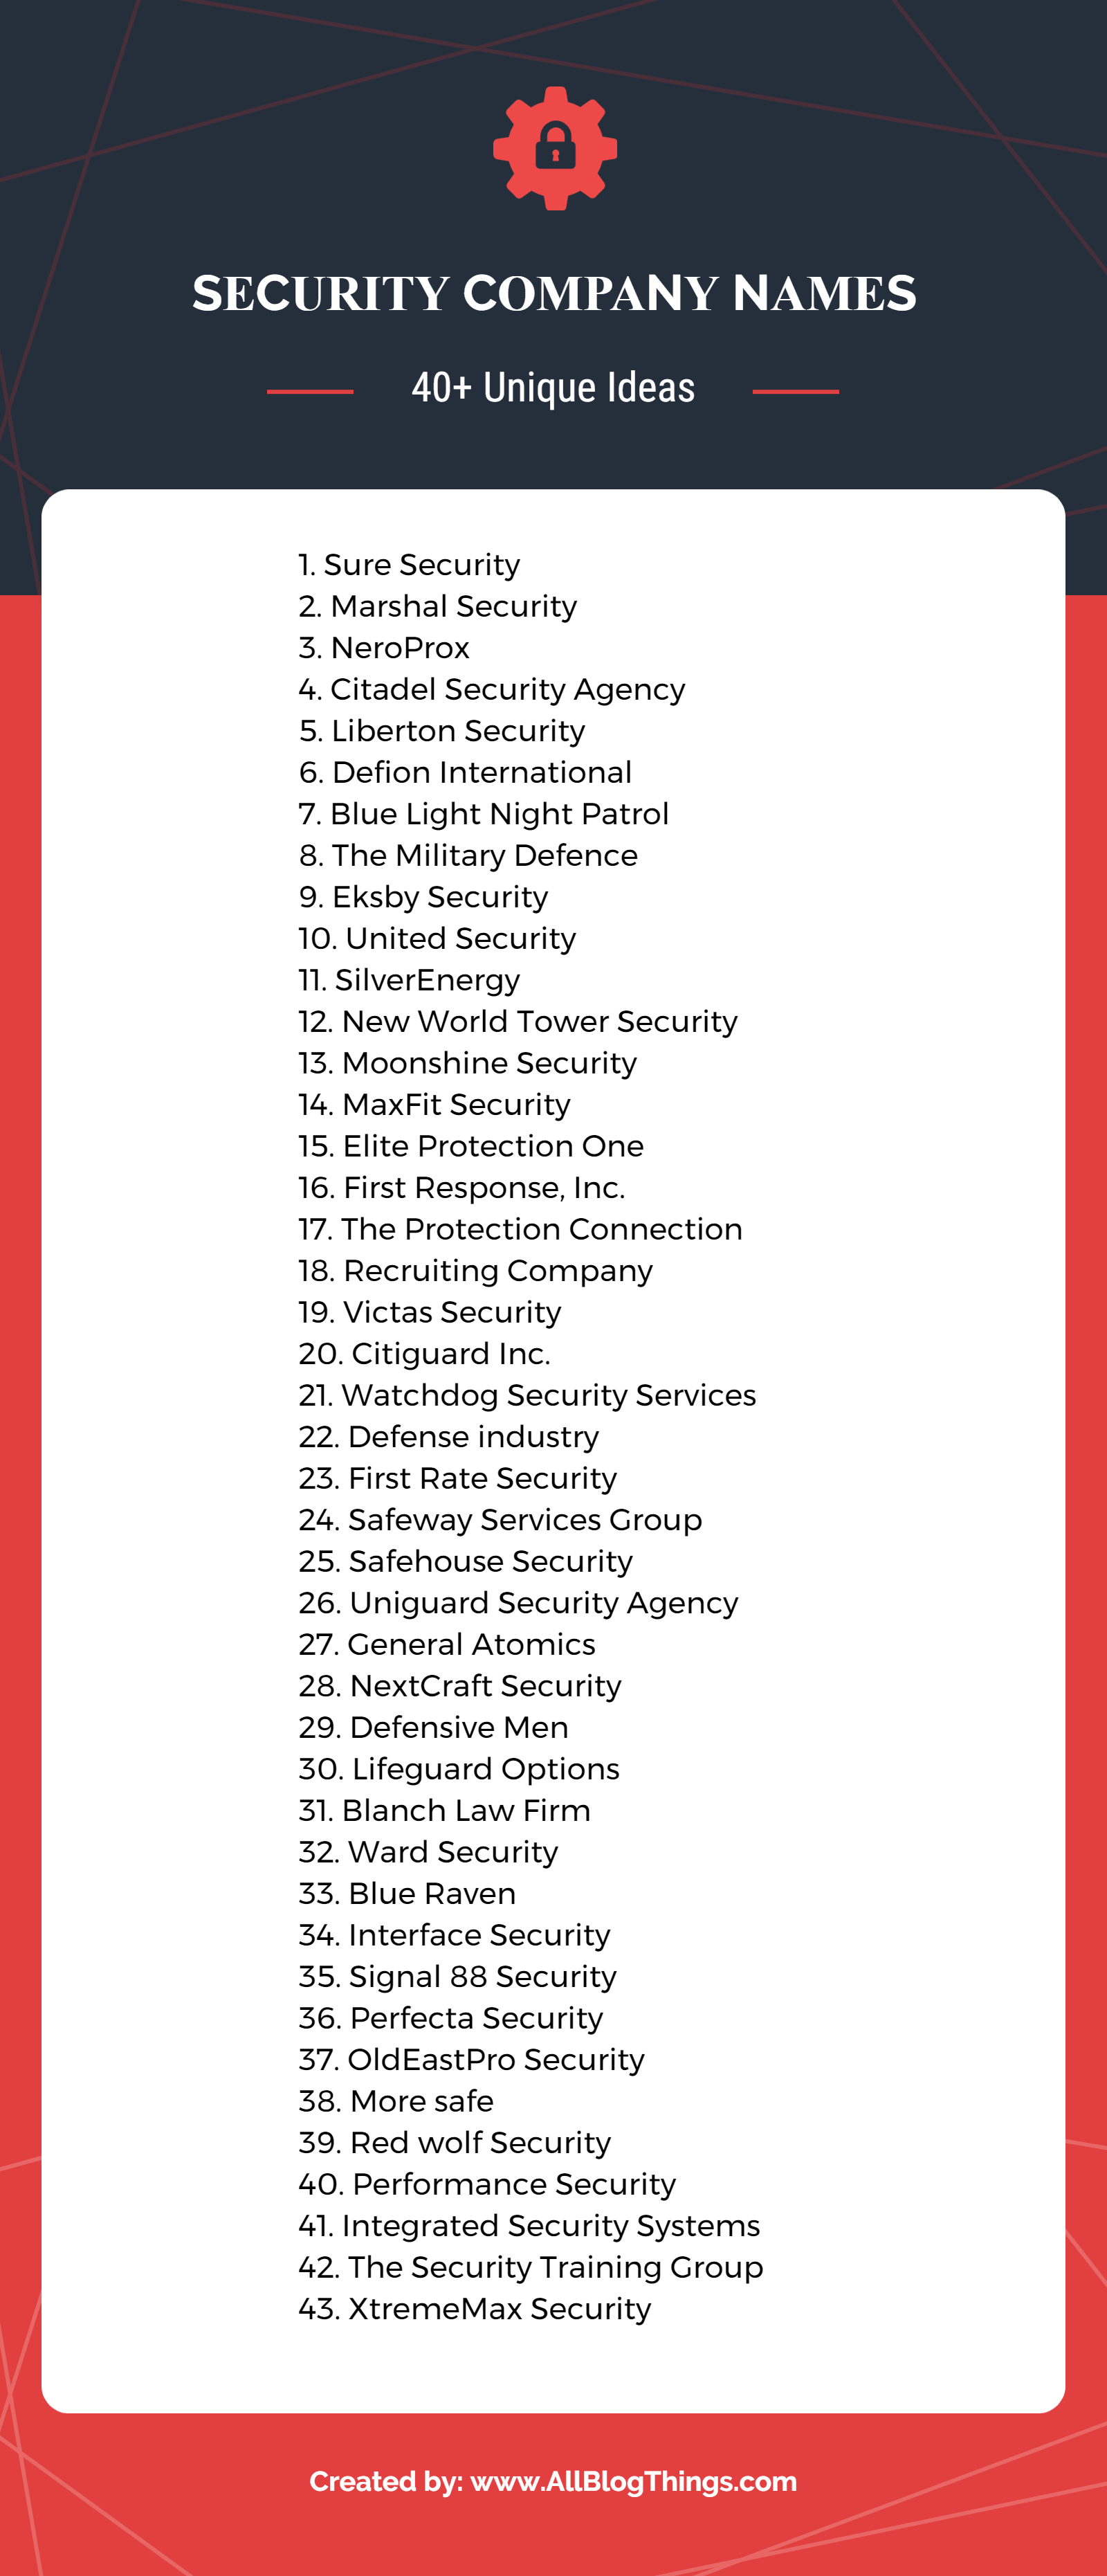 Security Company Names Infographic by AllBlogThings.com